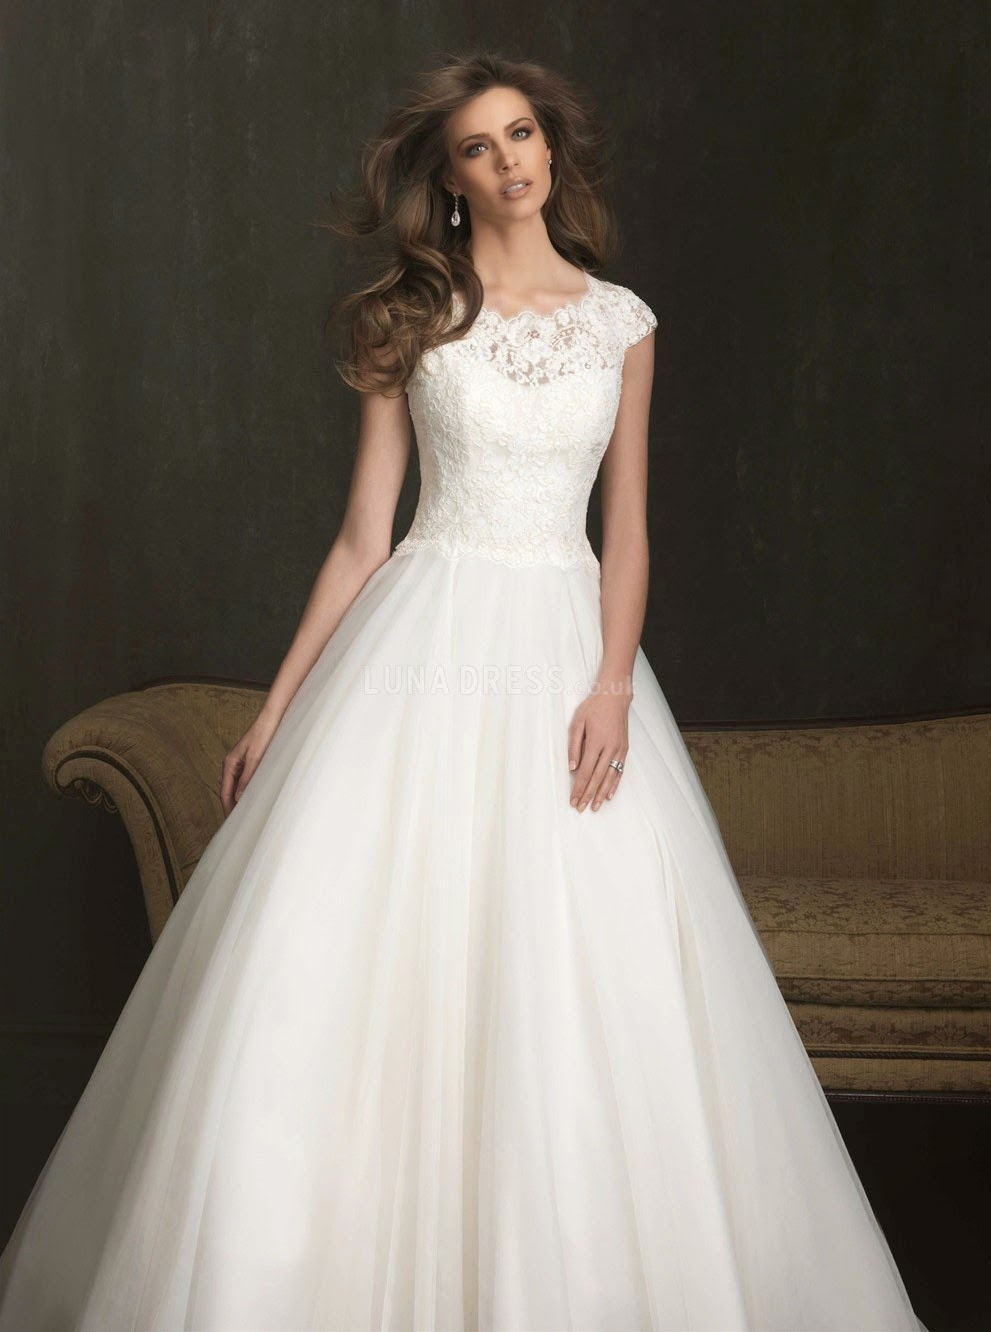 Backless Wedding Dresses With Short Sleeves Photos HD Ideas